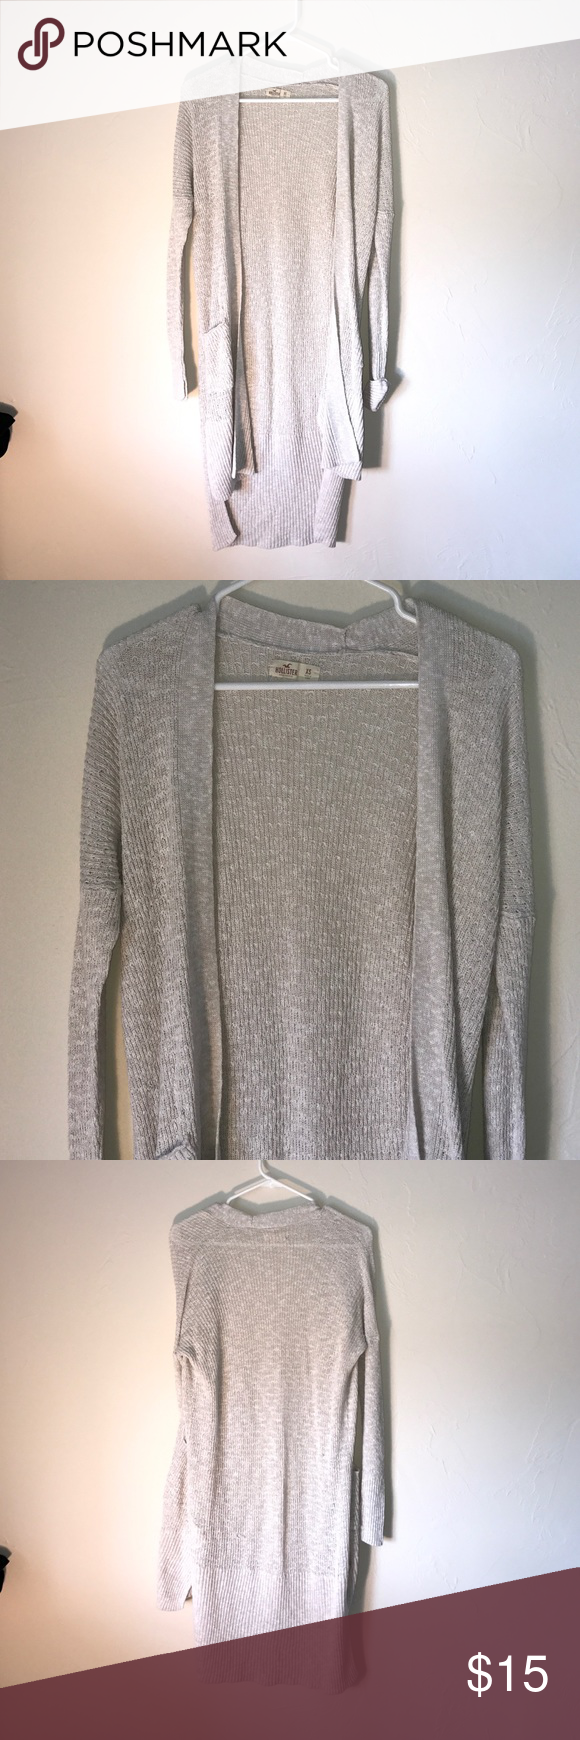 Hollister Duster Sweater🎩 Hollister Duster Sweater🎩. Hi lo hem, open style Cardigan, front pockets. Great preowned condition! Hollister Sweaters Cardigans